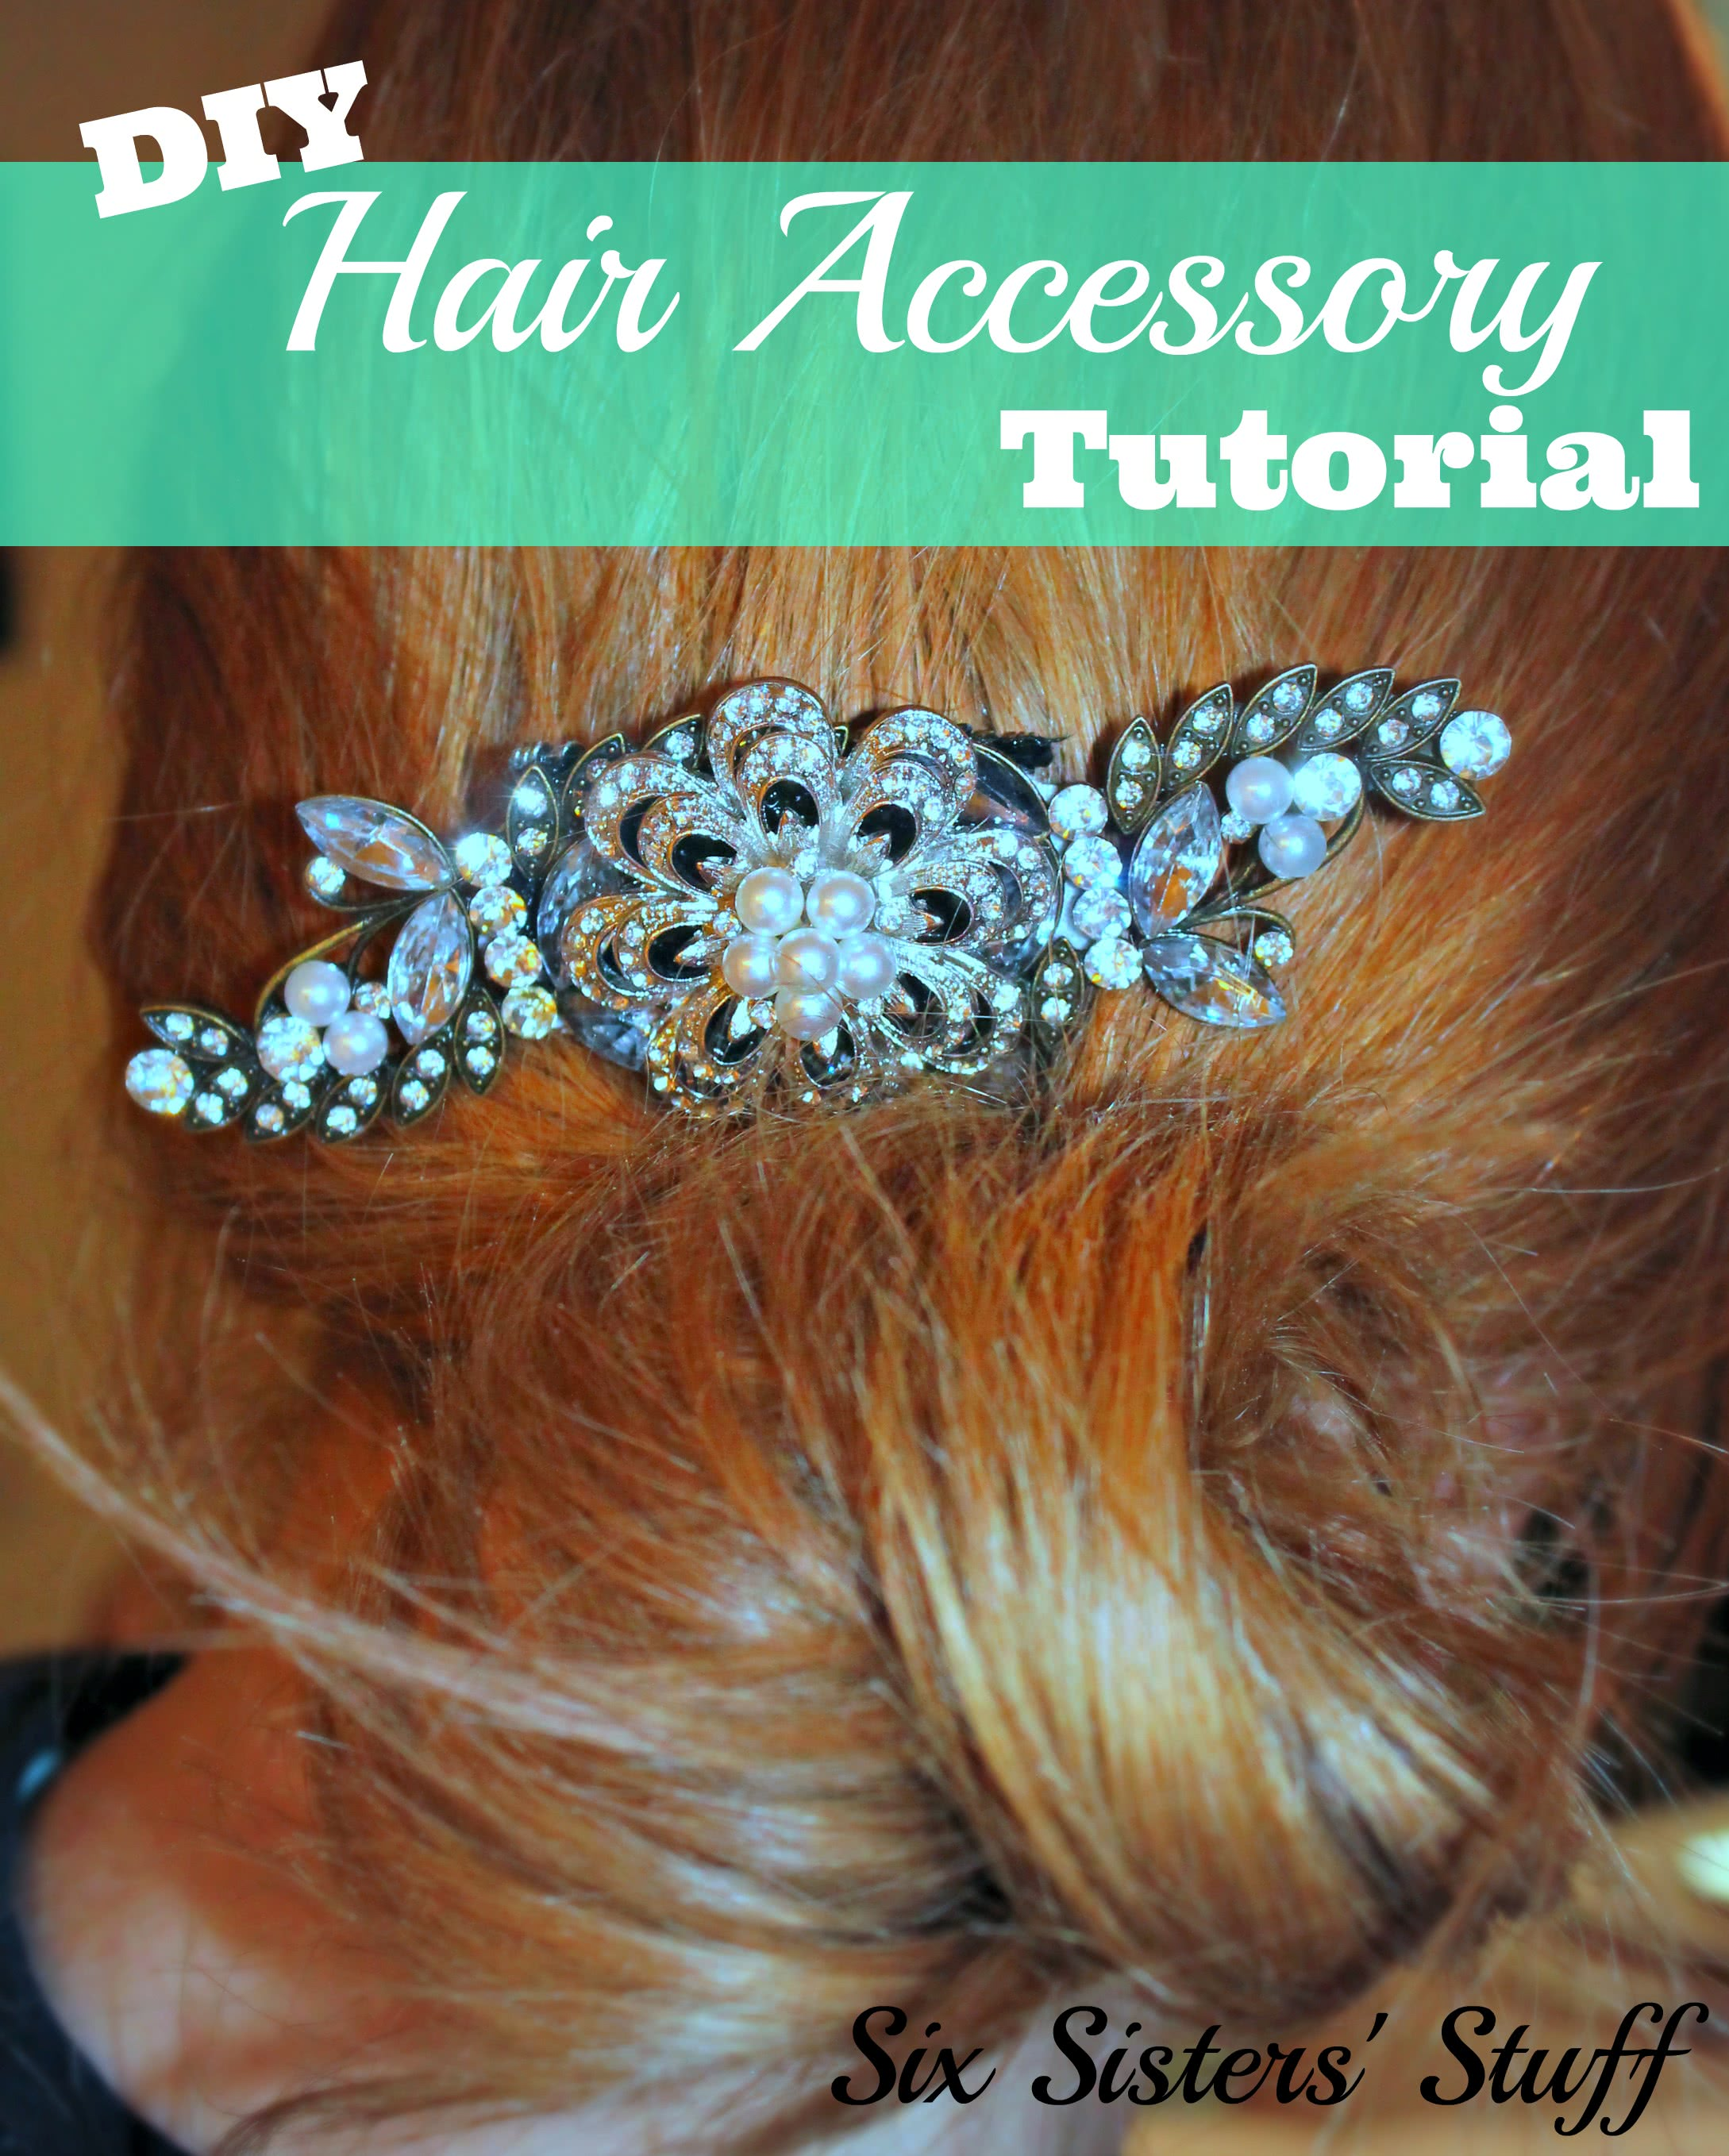 DIY-Hair-Accessory-Tutorial